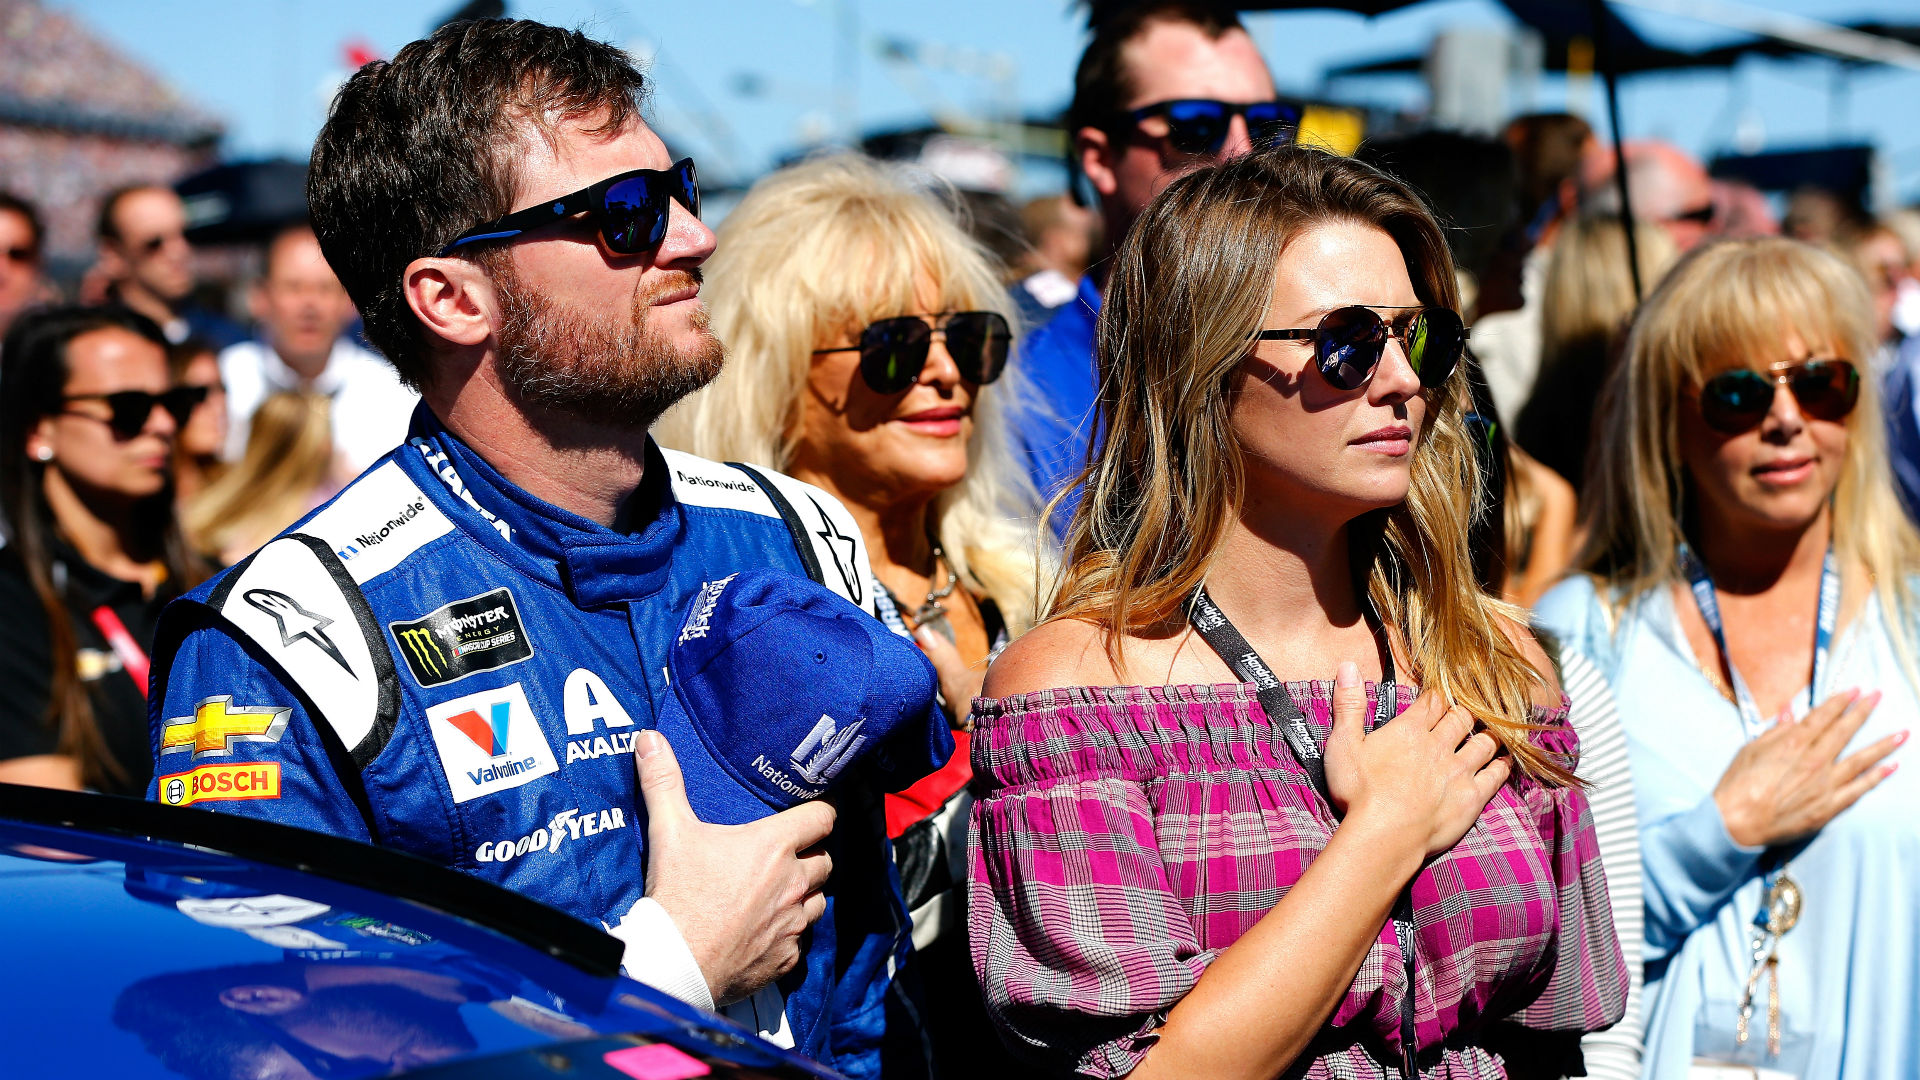 Dale Earnhardt Jr. clarifies where he stands on anthem demonstrations